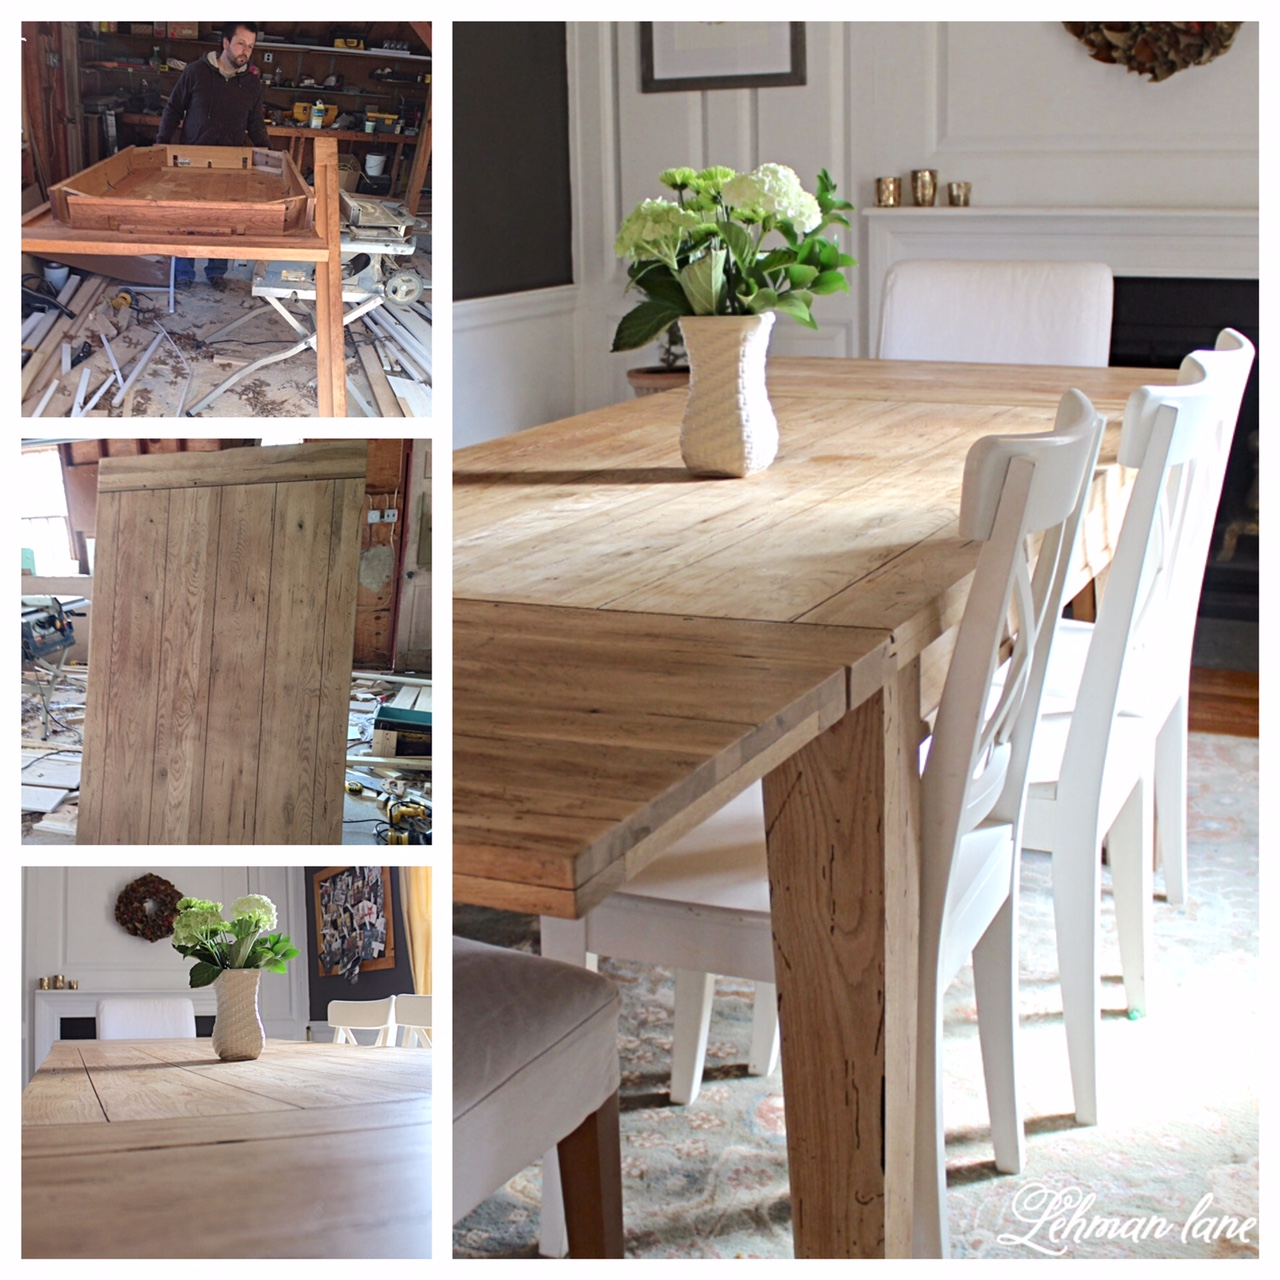 DIY Farmhouse Table...Restoration Hardware Inspired Farmhouse Table    Lehman Lane